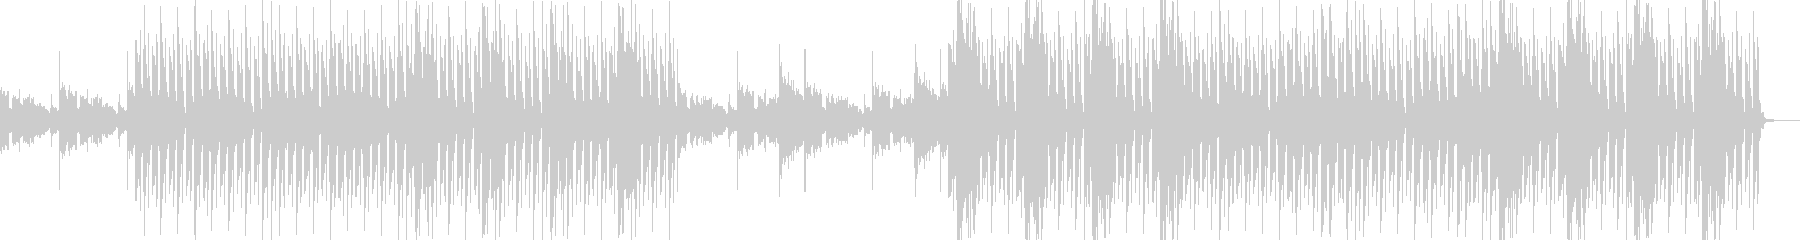 Near-future tension / texture opening's unreproduced waveform